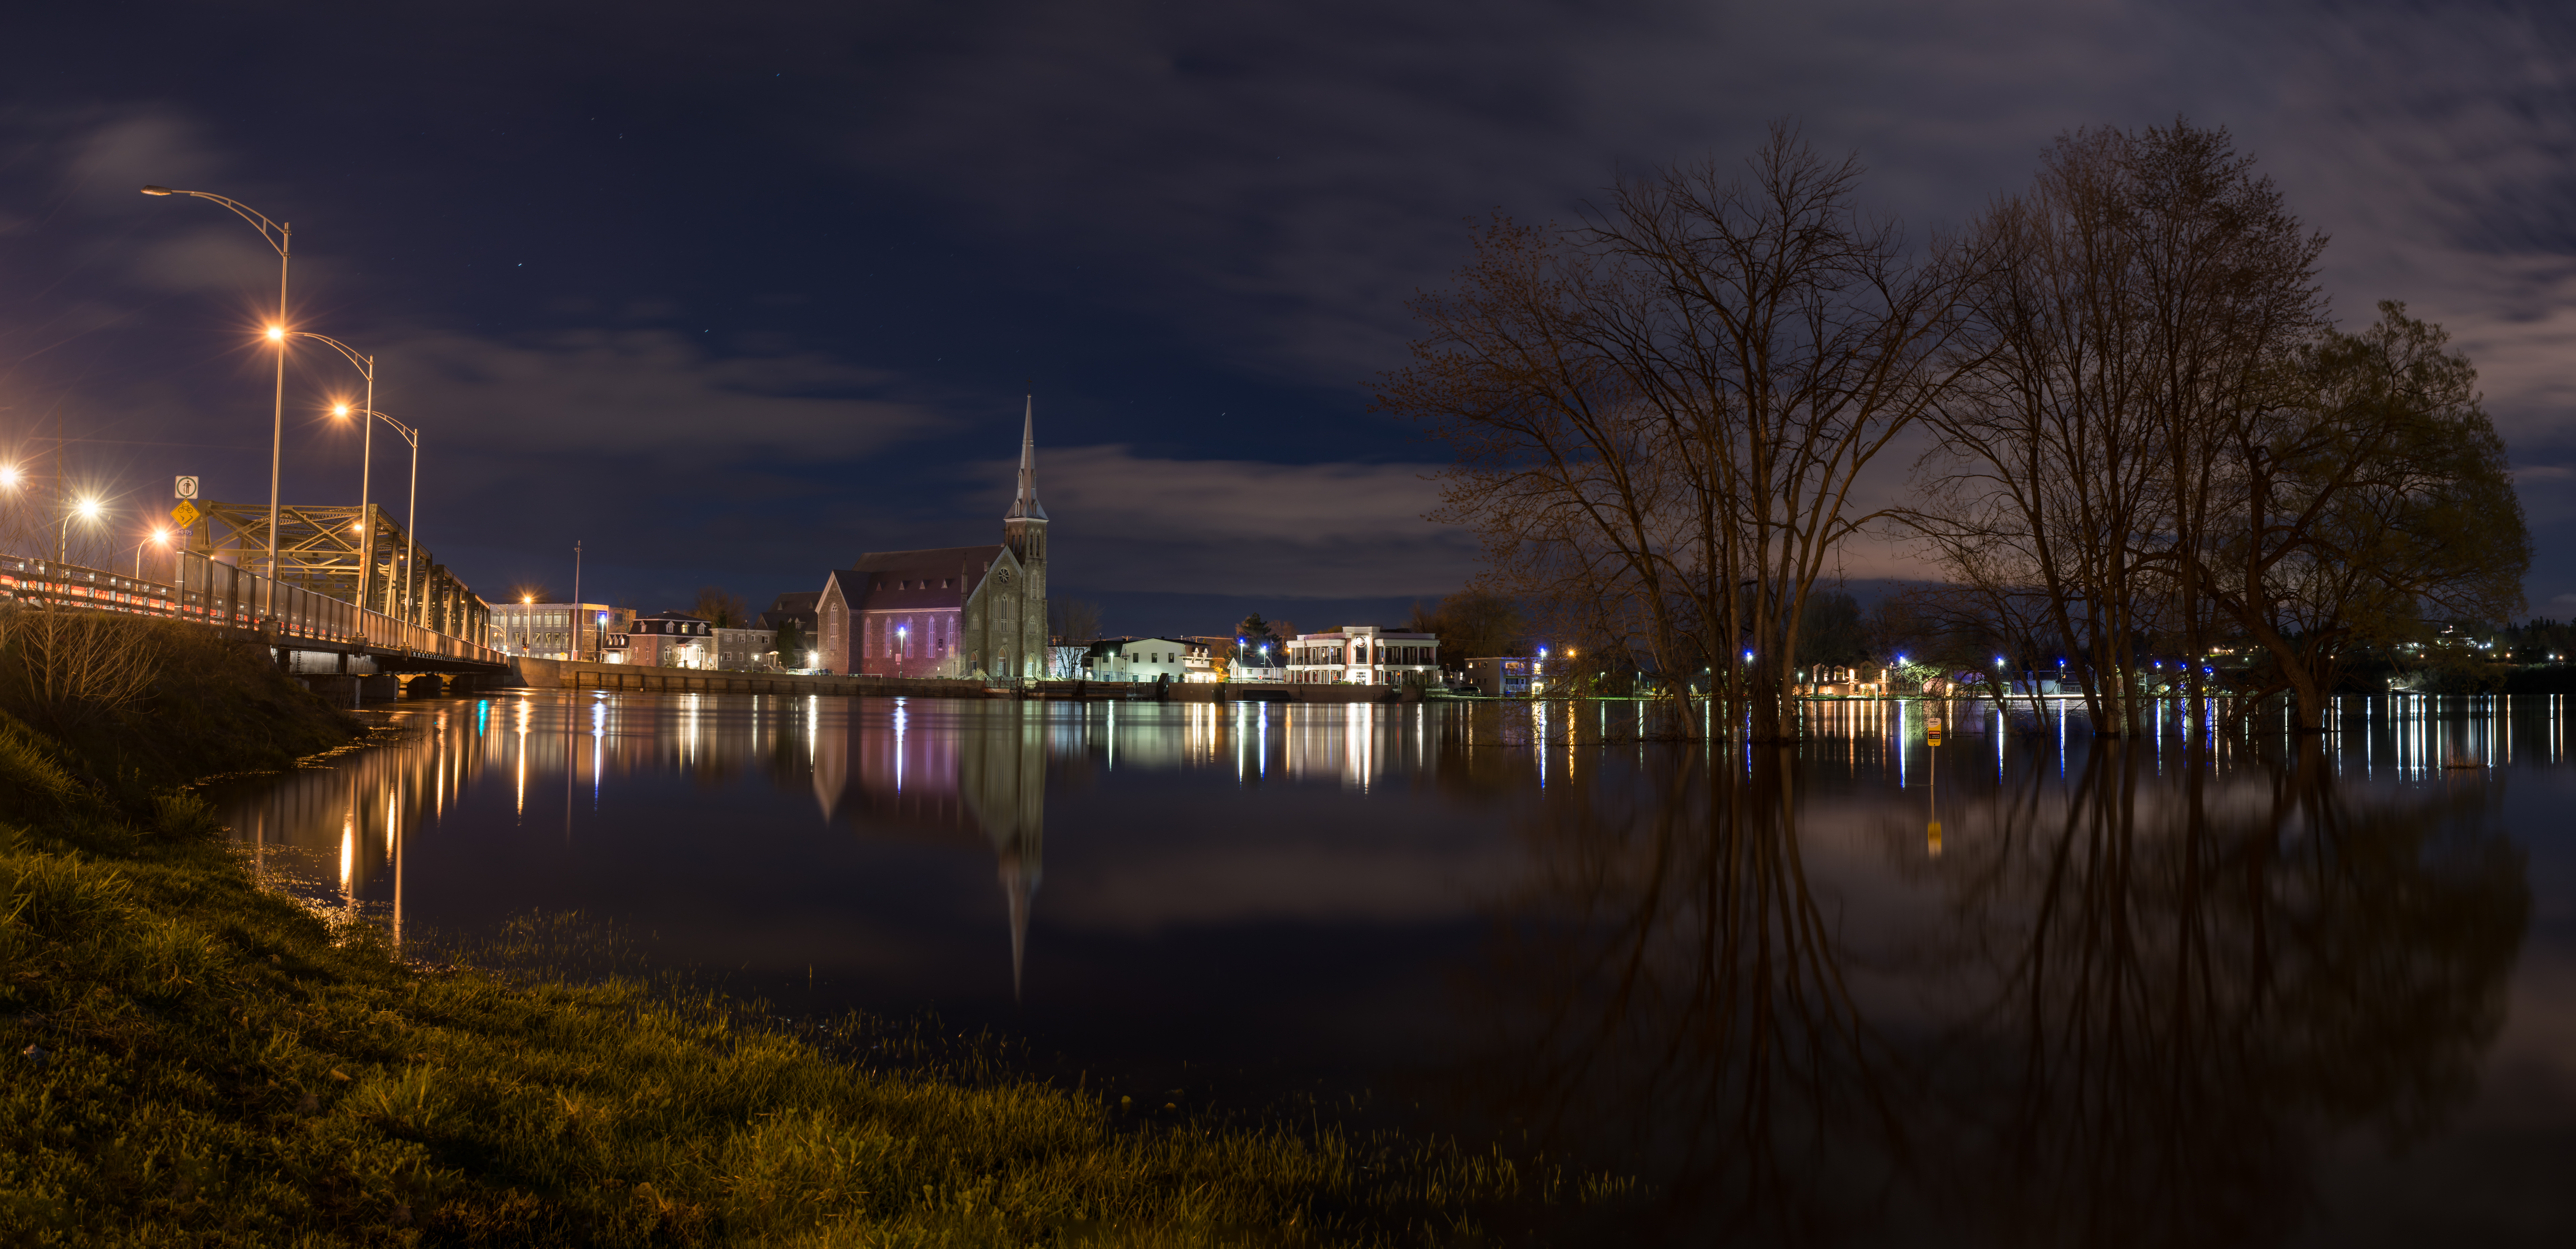 Flooding River at Night - Gtaineau Panorama-5